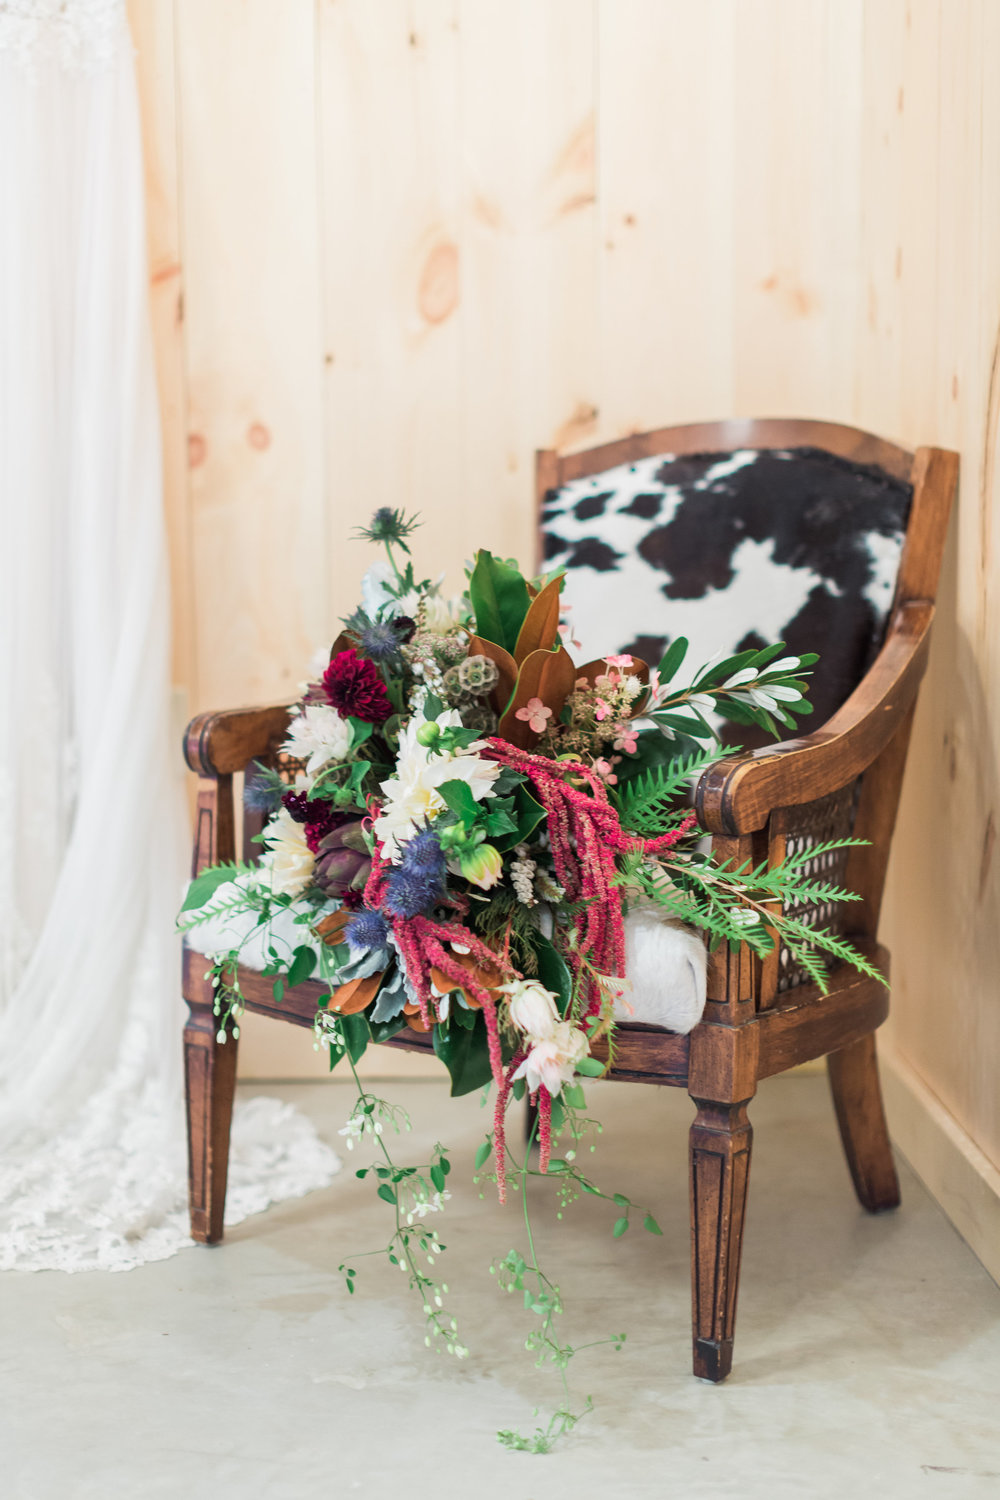 rustic-purple-green-bouquet-cowhide-country-country-lane-lodge-adel-iowa-wedding-venue-iowa-wedding-planned-by-mostly-becky-weddings